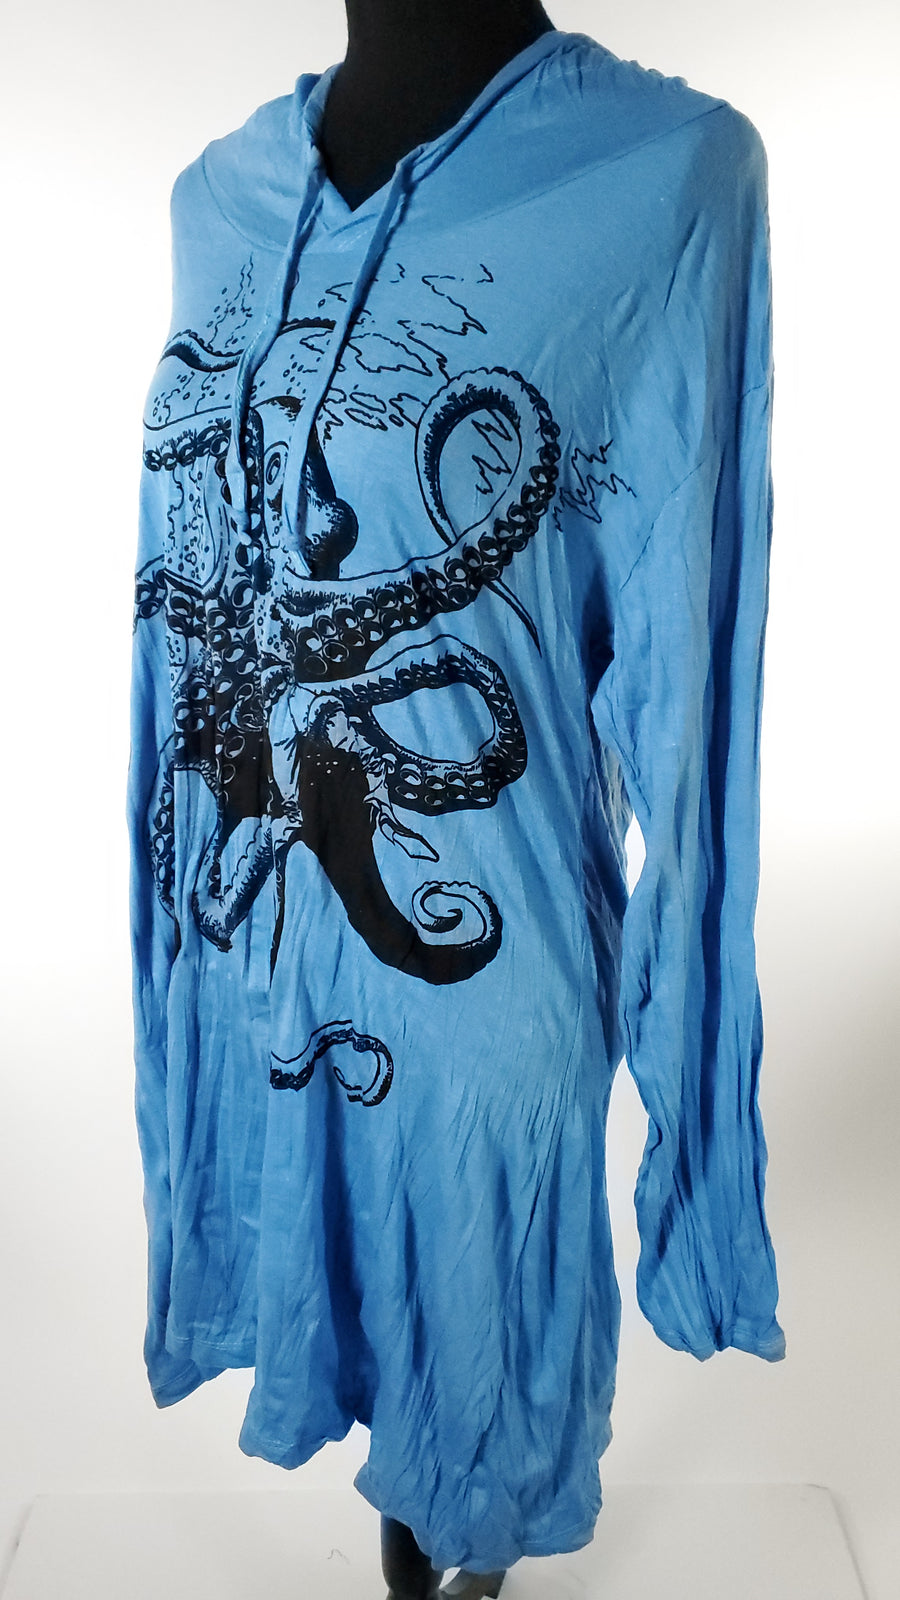 Women's Large Hoody Dress-The High Thai-The High Thai-Yoga Pants-Harem Pants-Hippie Clothing-San Diego